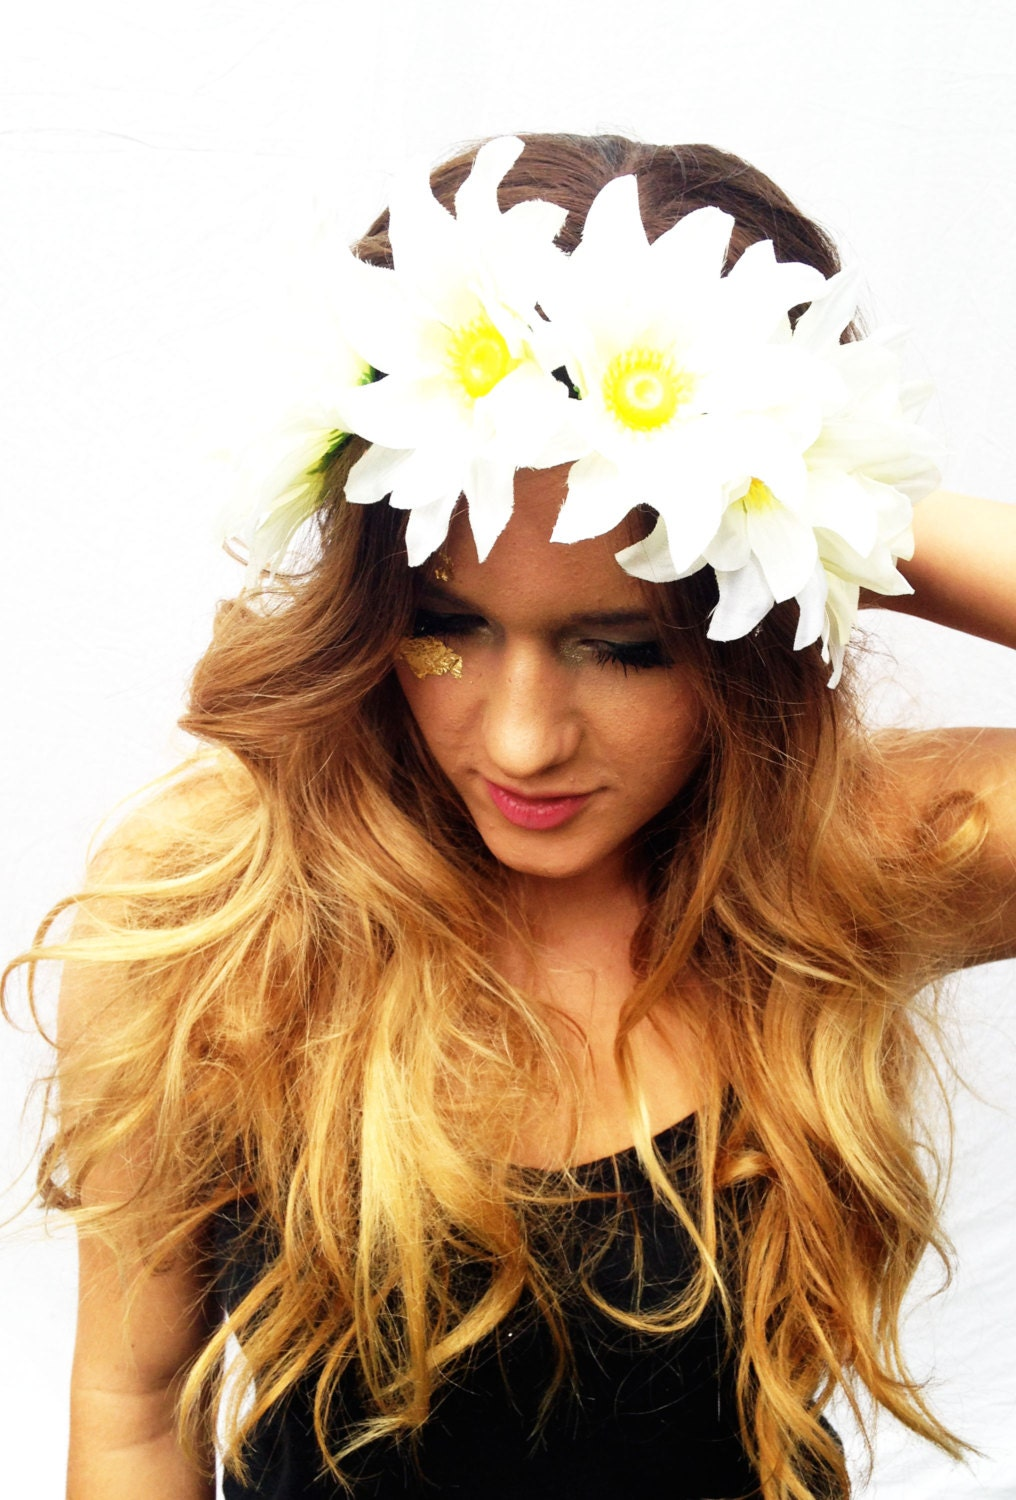 flower headband tumblr girl - photo #43